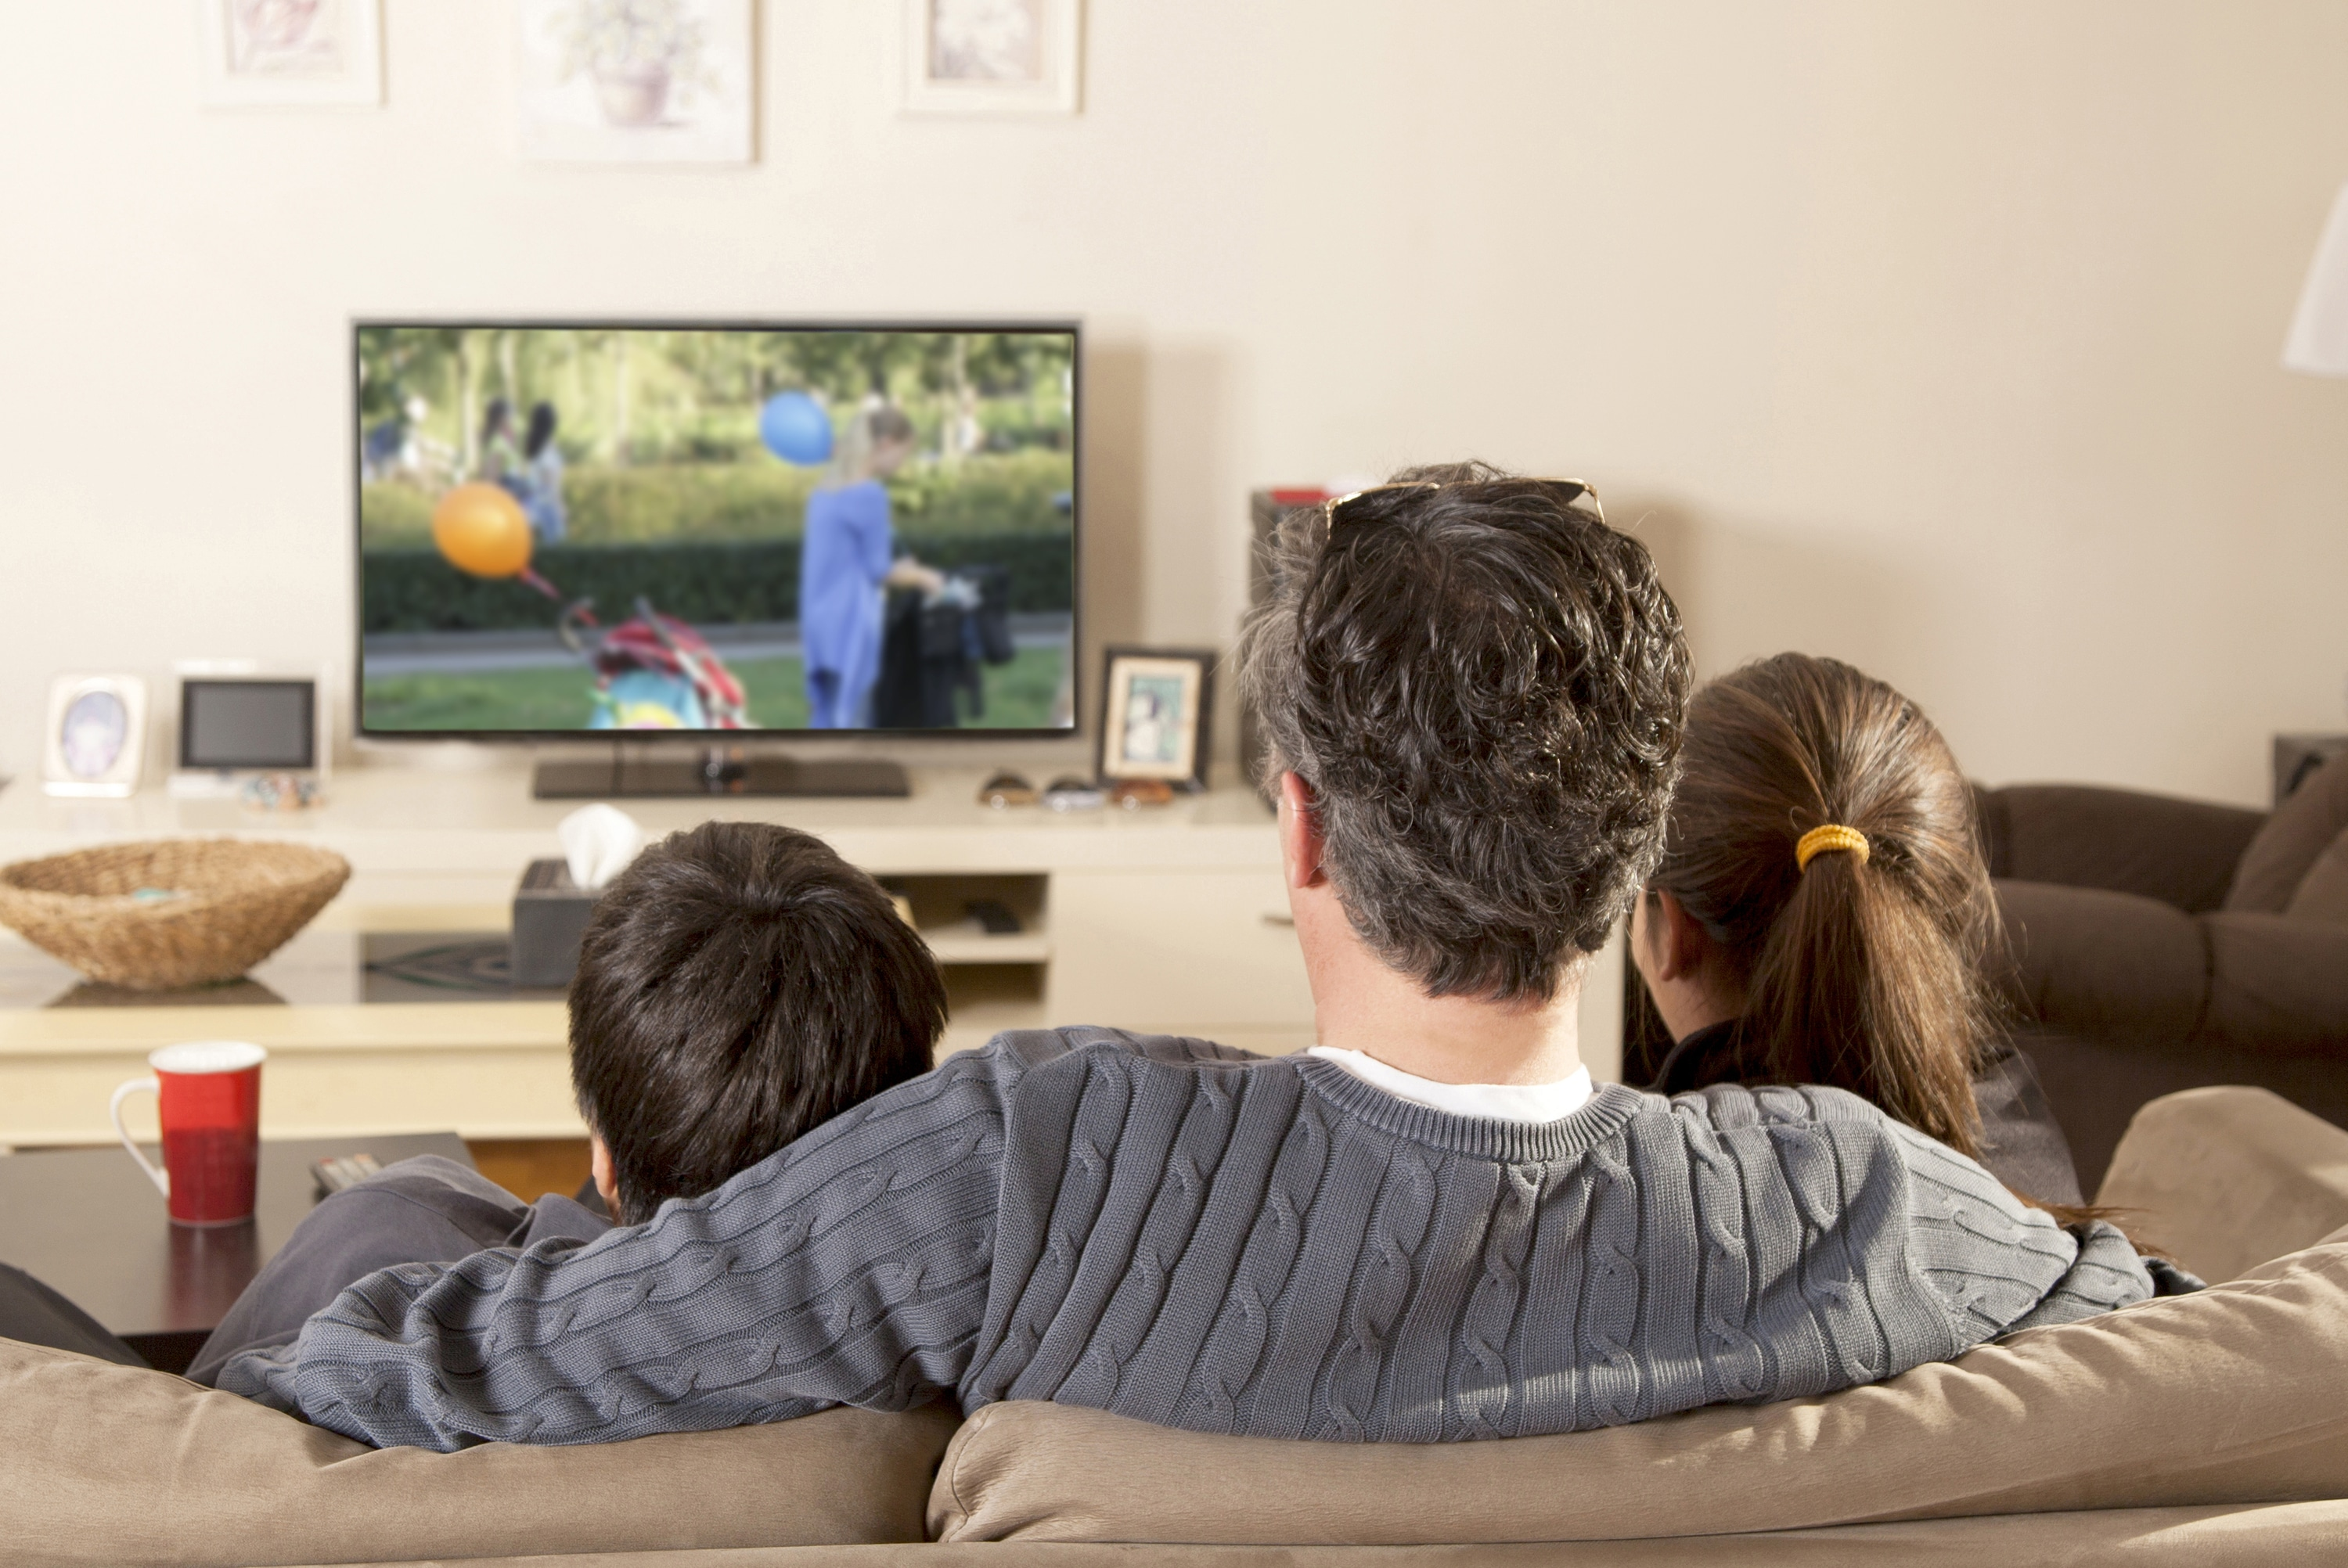 How to Watch Free HDTV Channels in Your Area with Digital TV